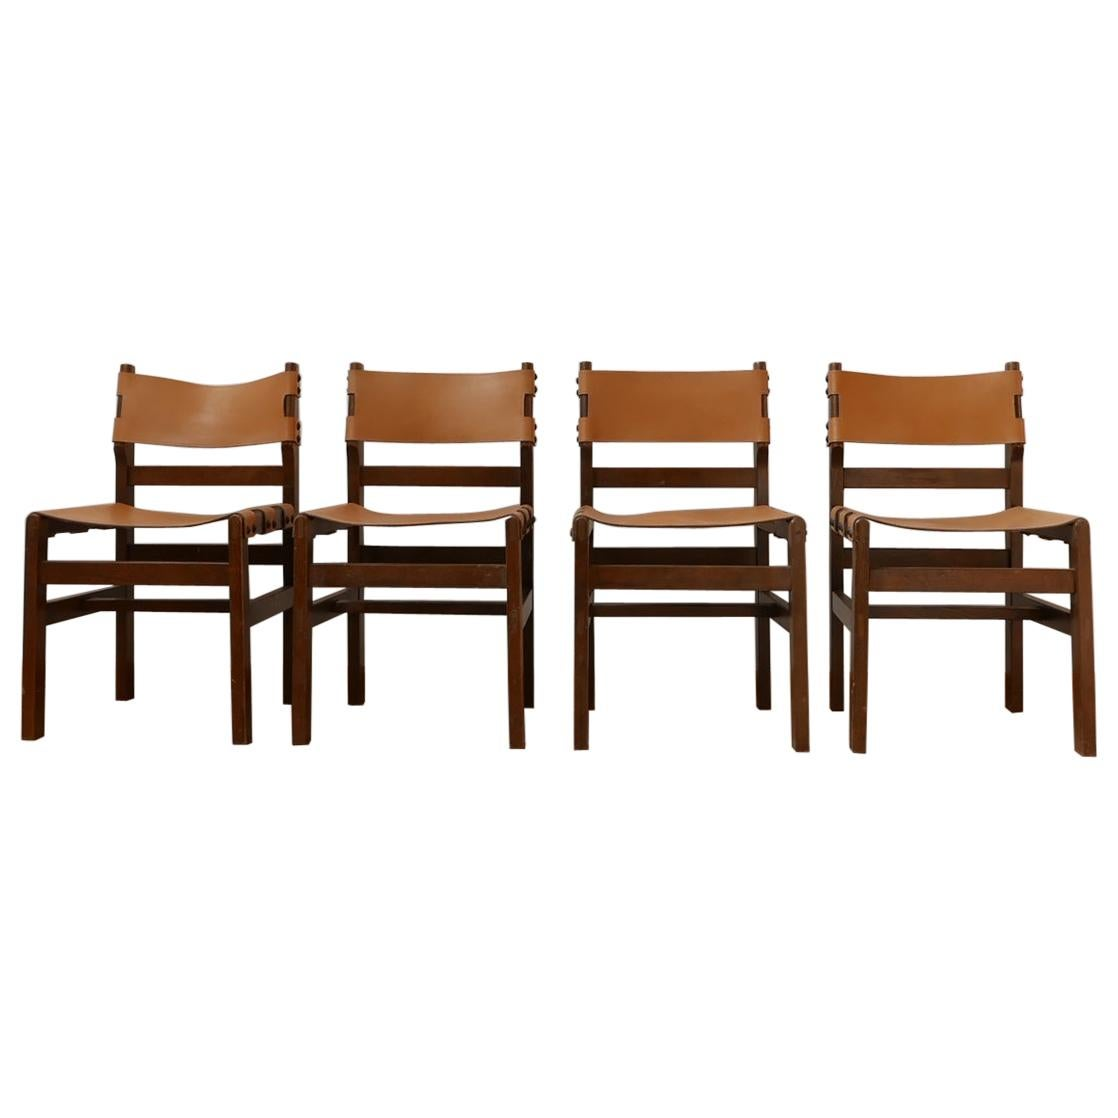 Maison Regain French Mid-Century Leather Dining Chairs Set No.2 '4'